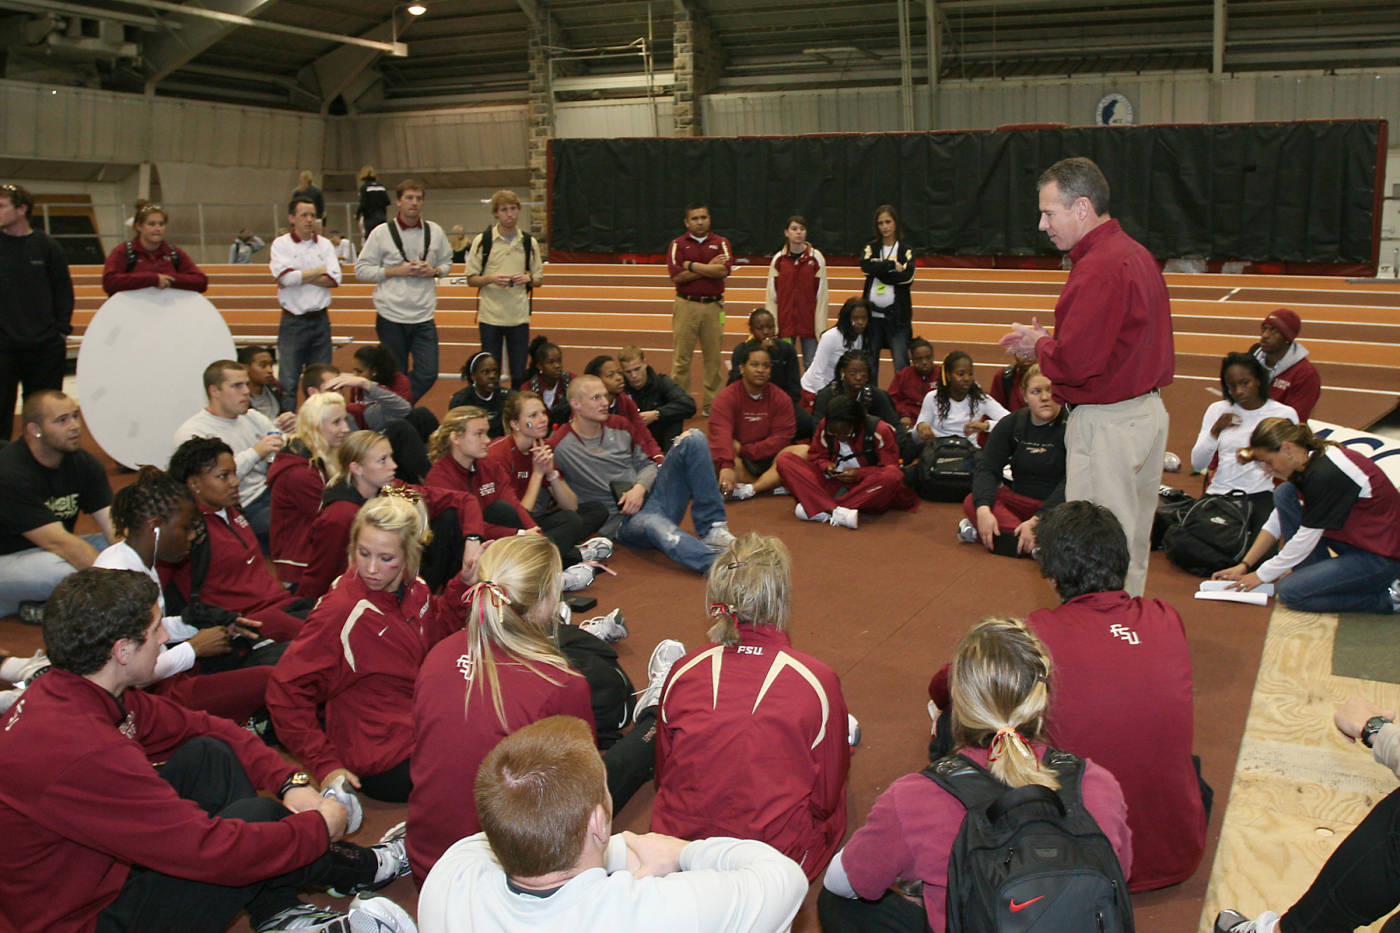 The 2009 ACC Indoor Championship